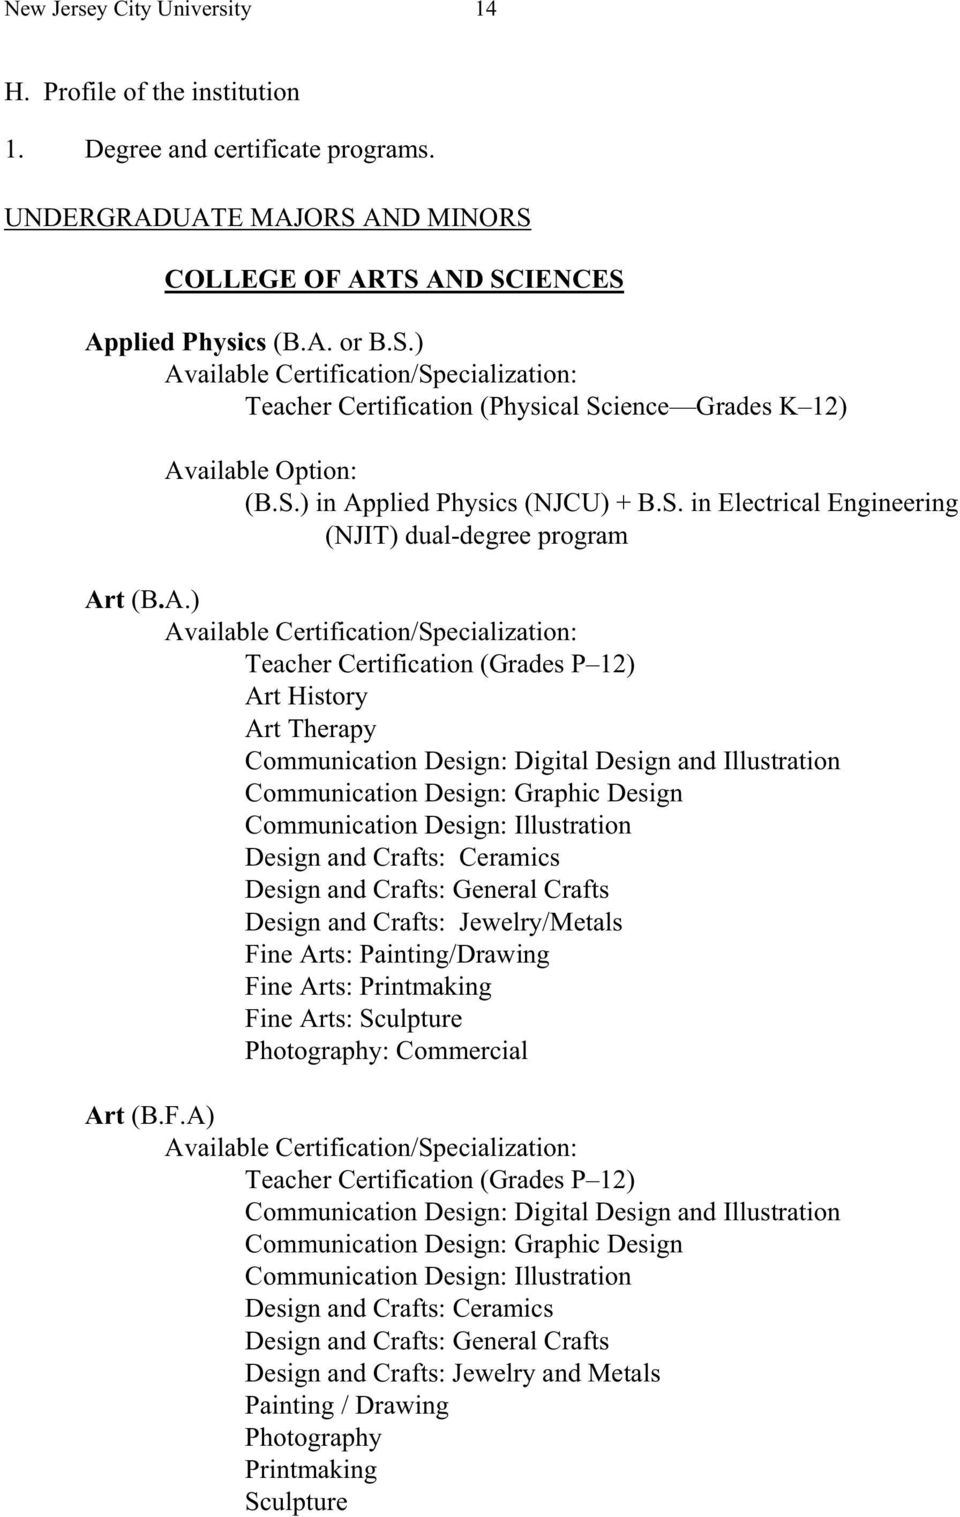 plied Physics (NJCU) + B.S. in Electrical Engineering (NJIT) dual-degree program Ar